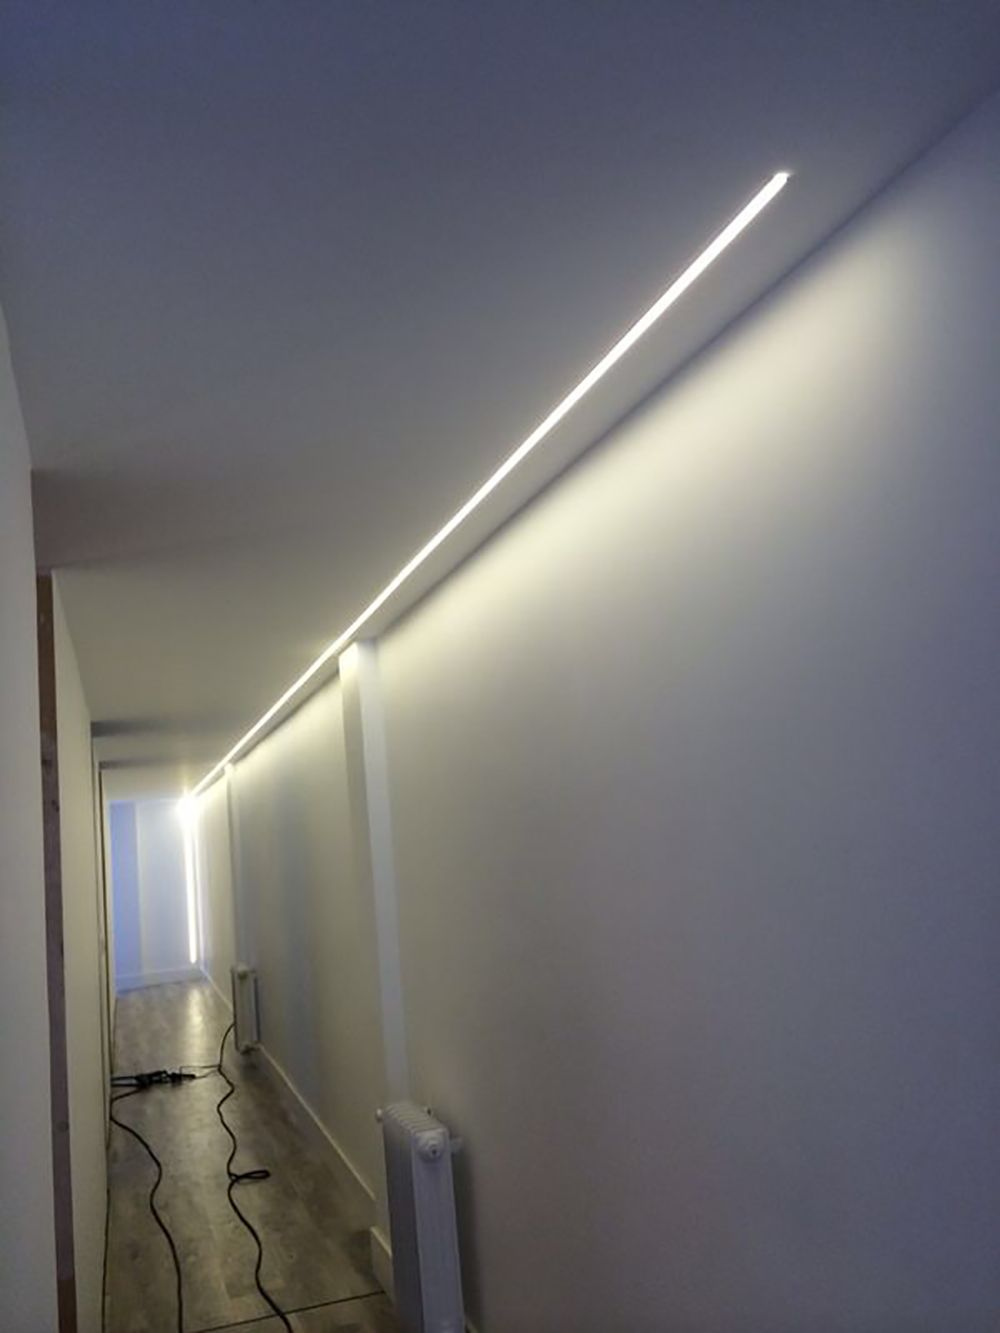 Ideas de decoraci n e iluminaci n con tiras de leds luz for Tiras led leroy merlin